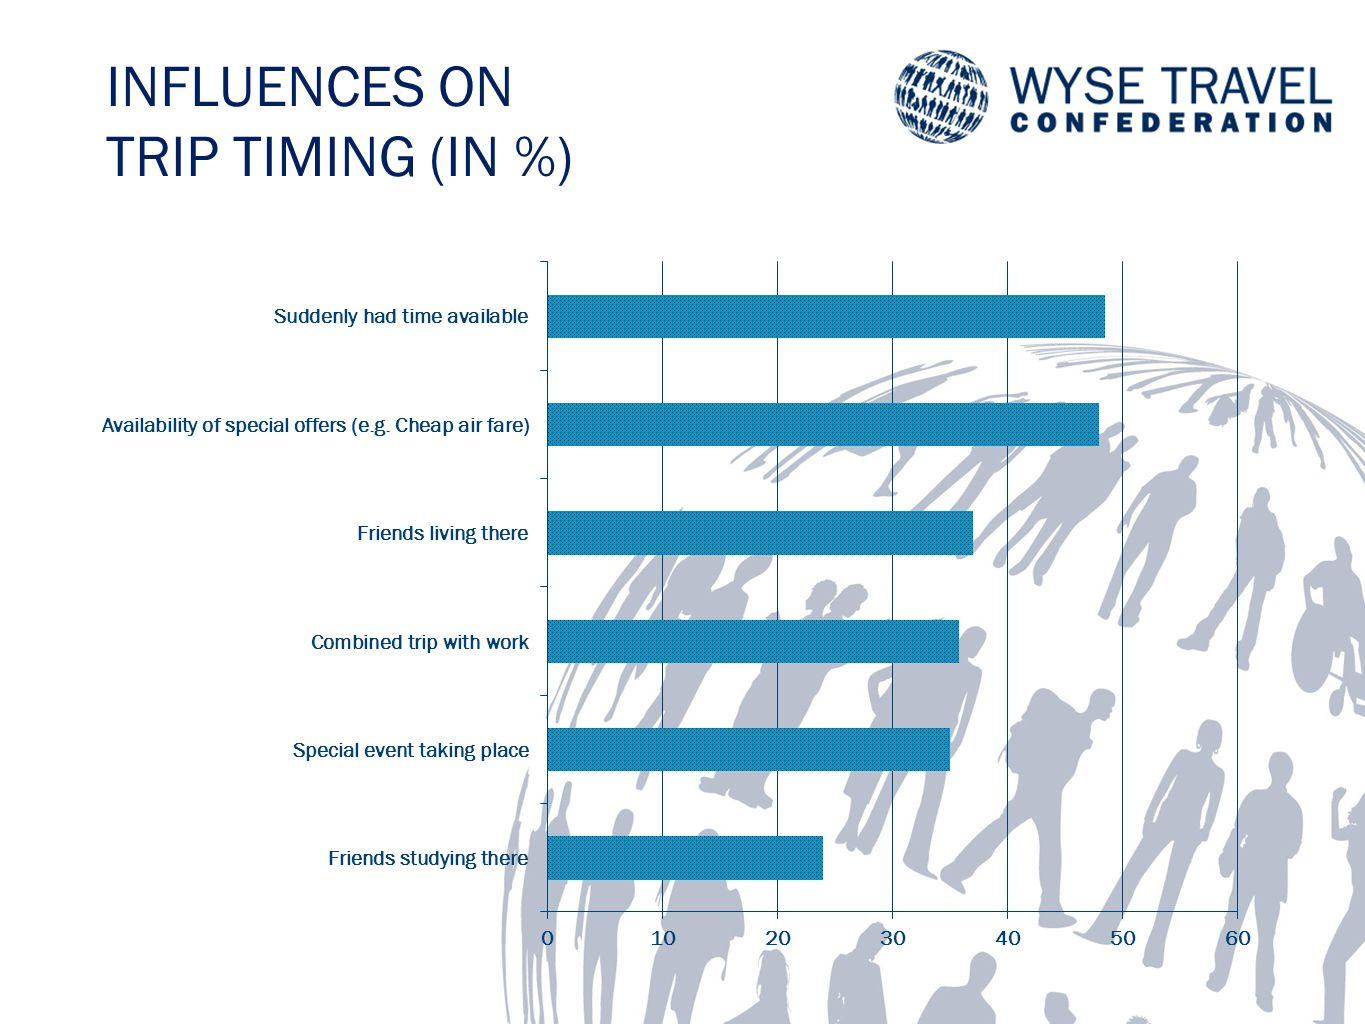 INFLUENCES ON TRIP TIMING (IN %)